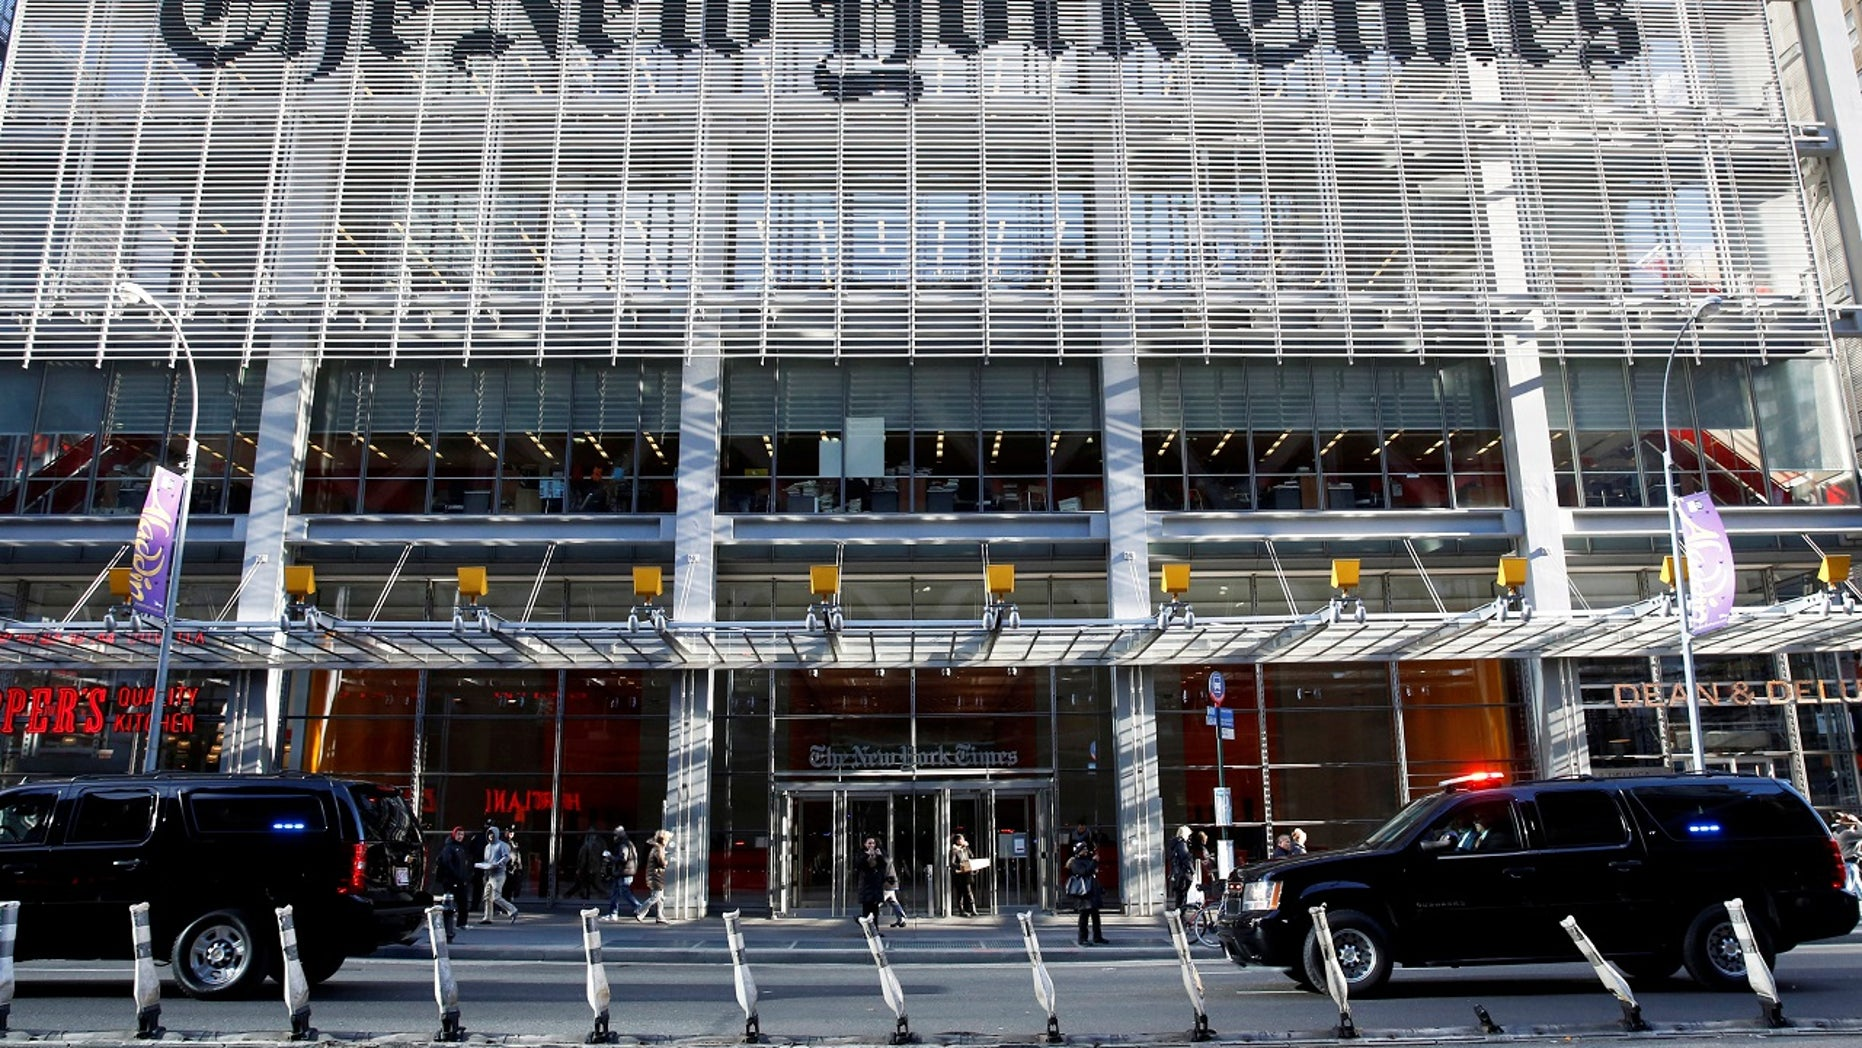 The New York Times was slammed Tuesday for spreading the holiday fire over the romanticization of the Lebanese militant group Hezbollah.